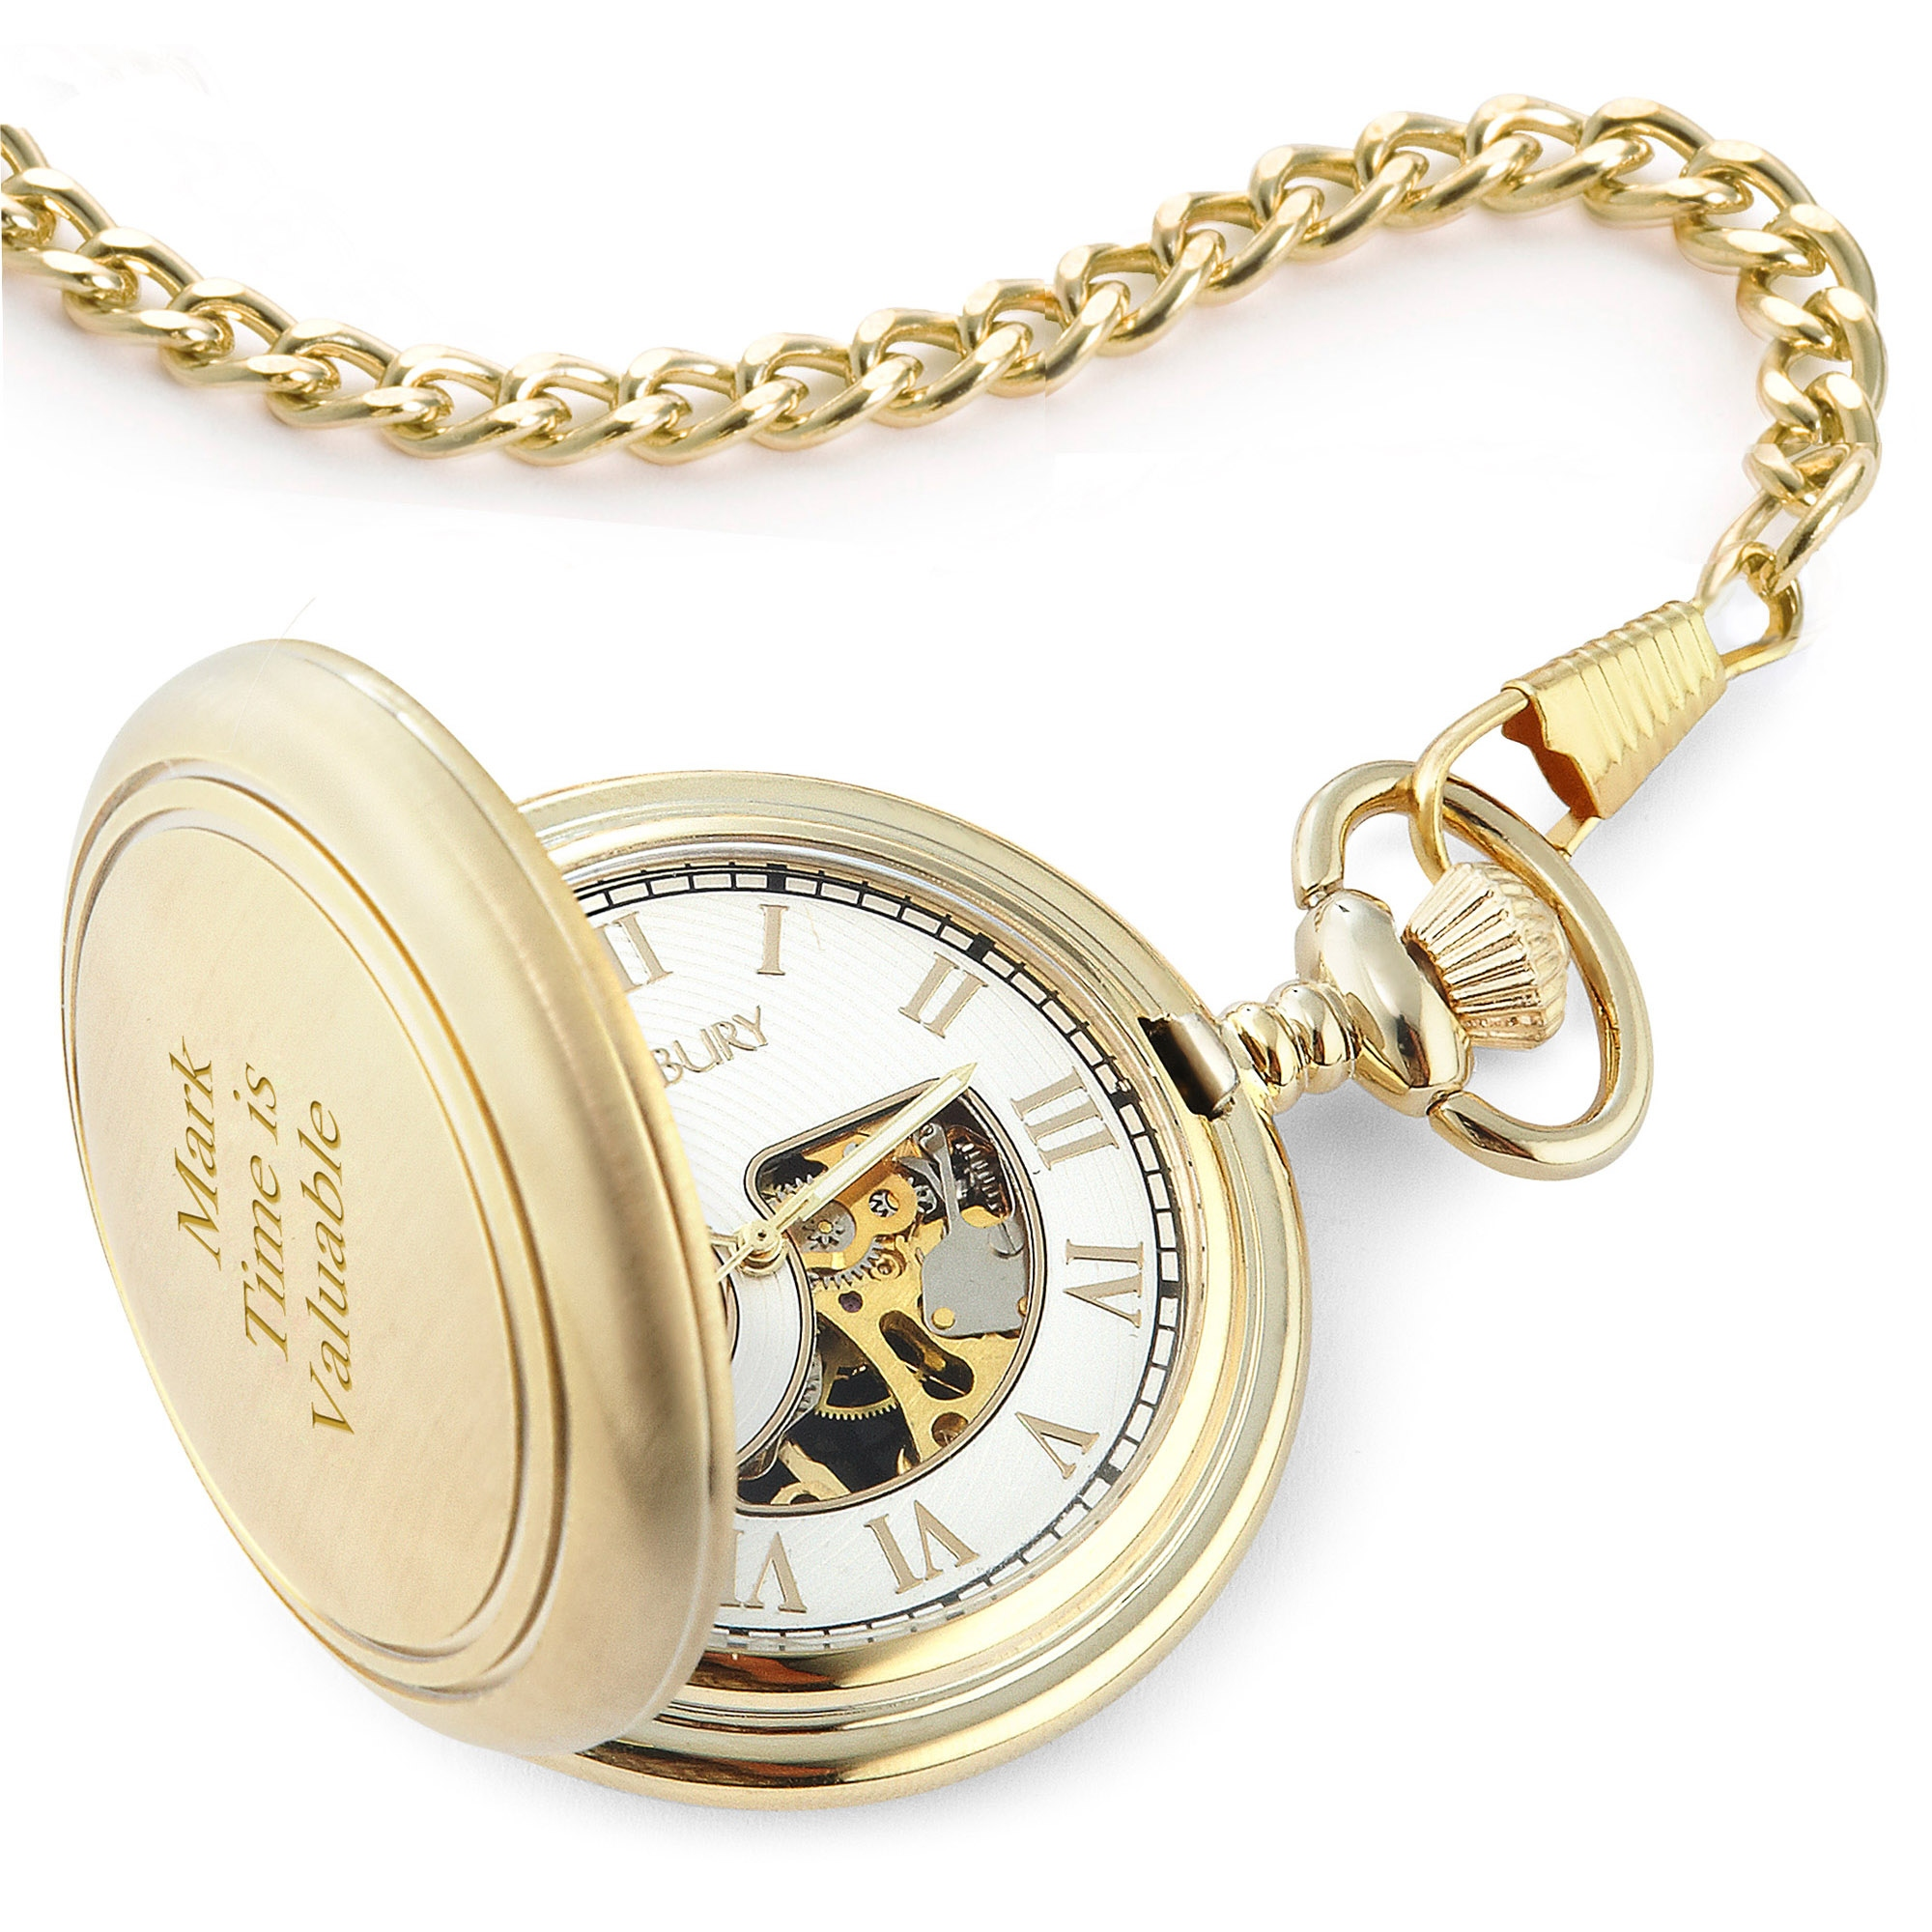 Brushed Gold Skeleton Pocket Watch